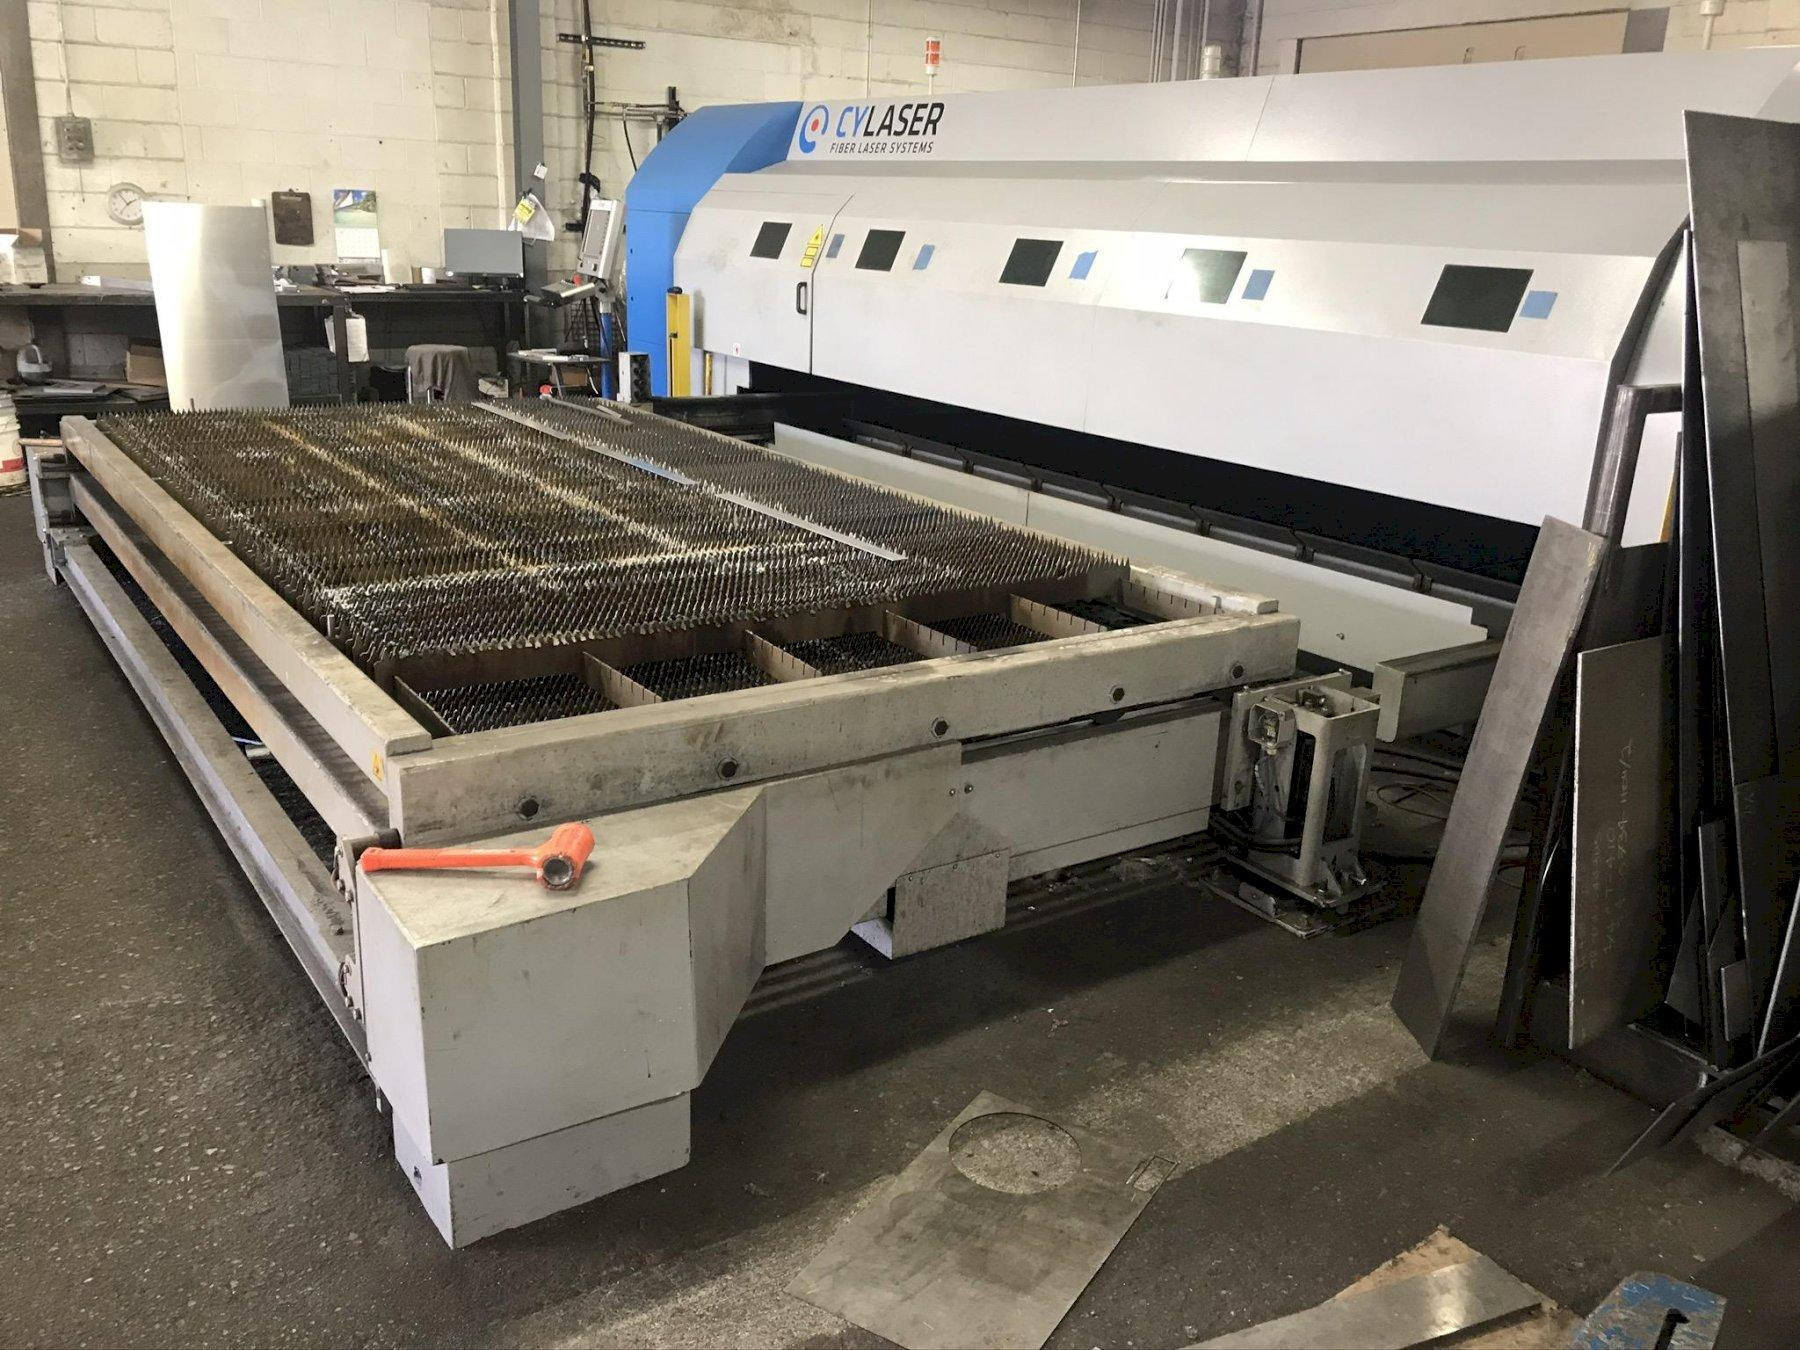 2015 CY Laser CY2040S Laser Cutting System (#3916)